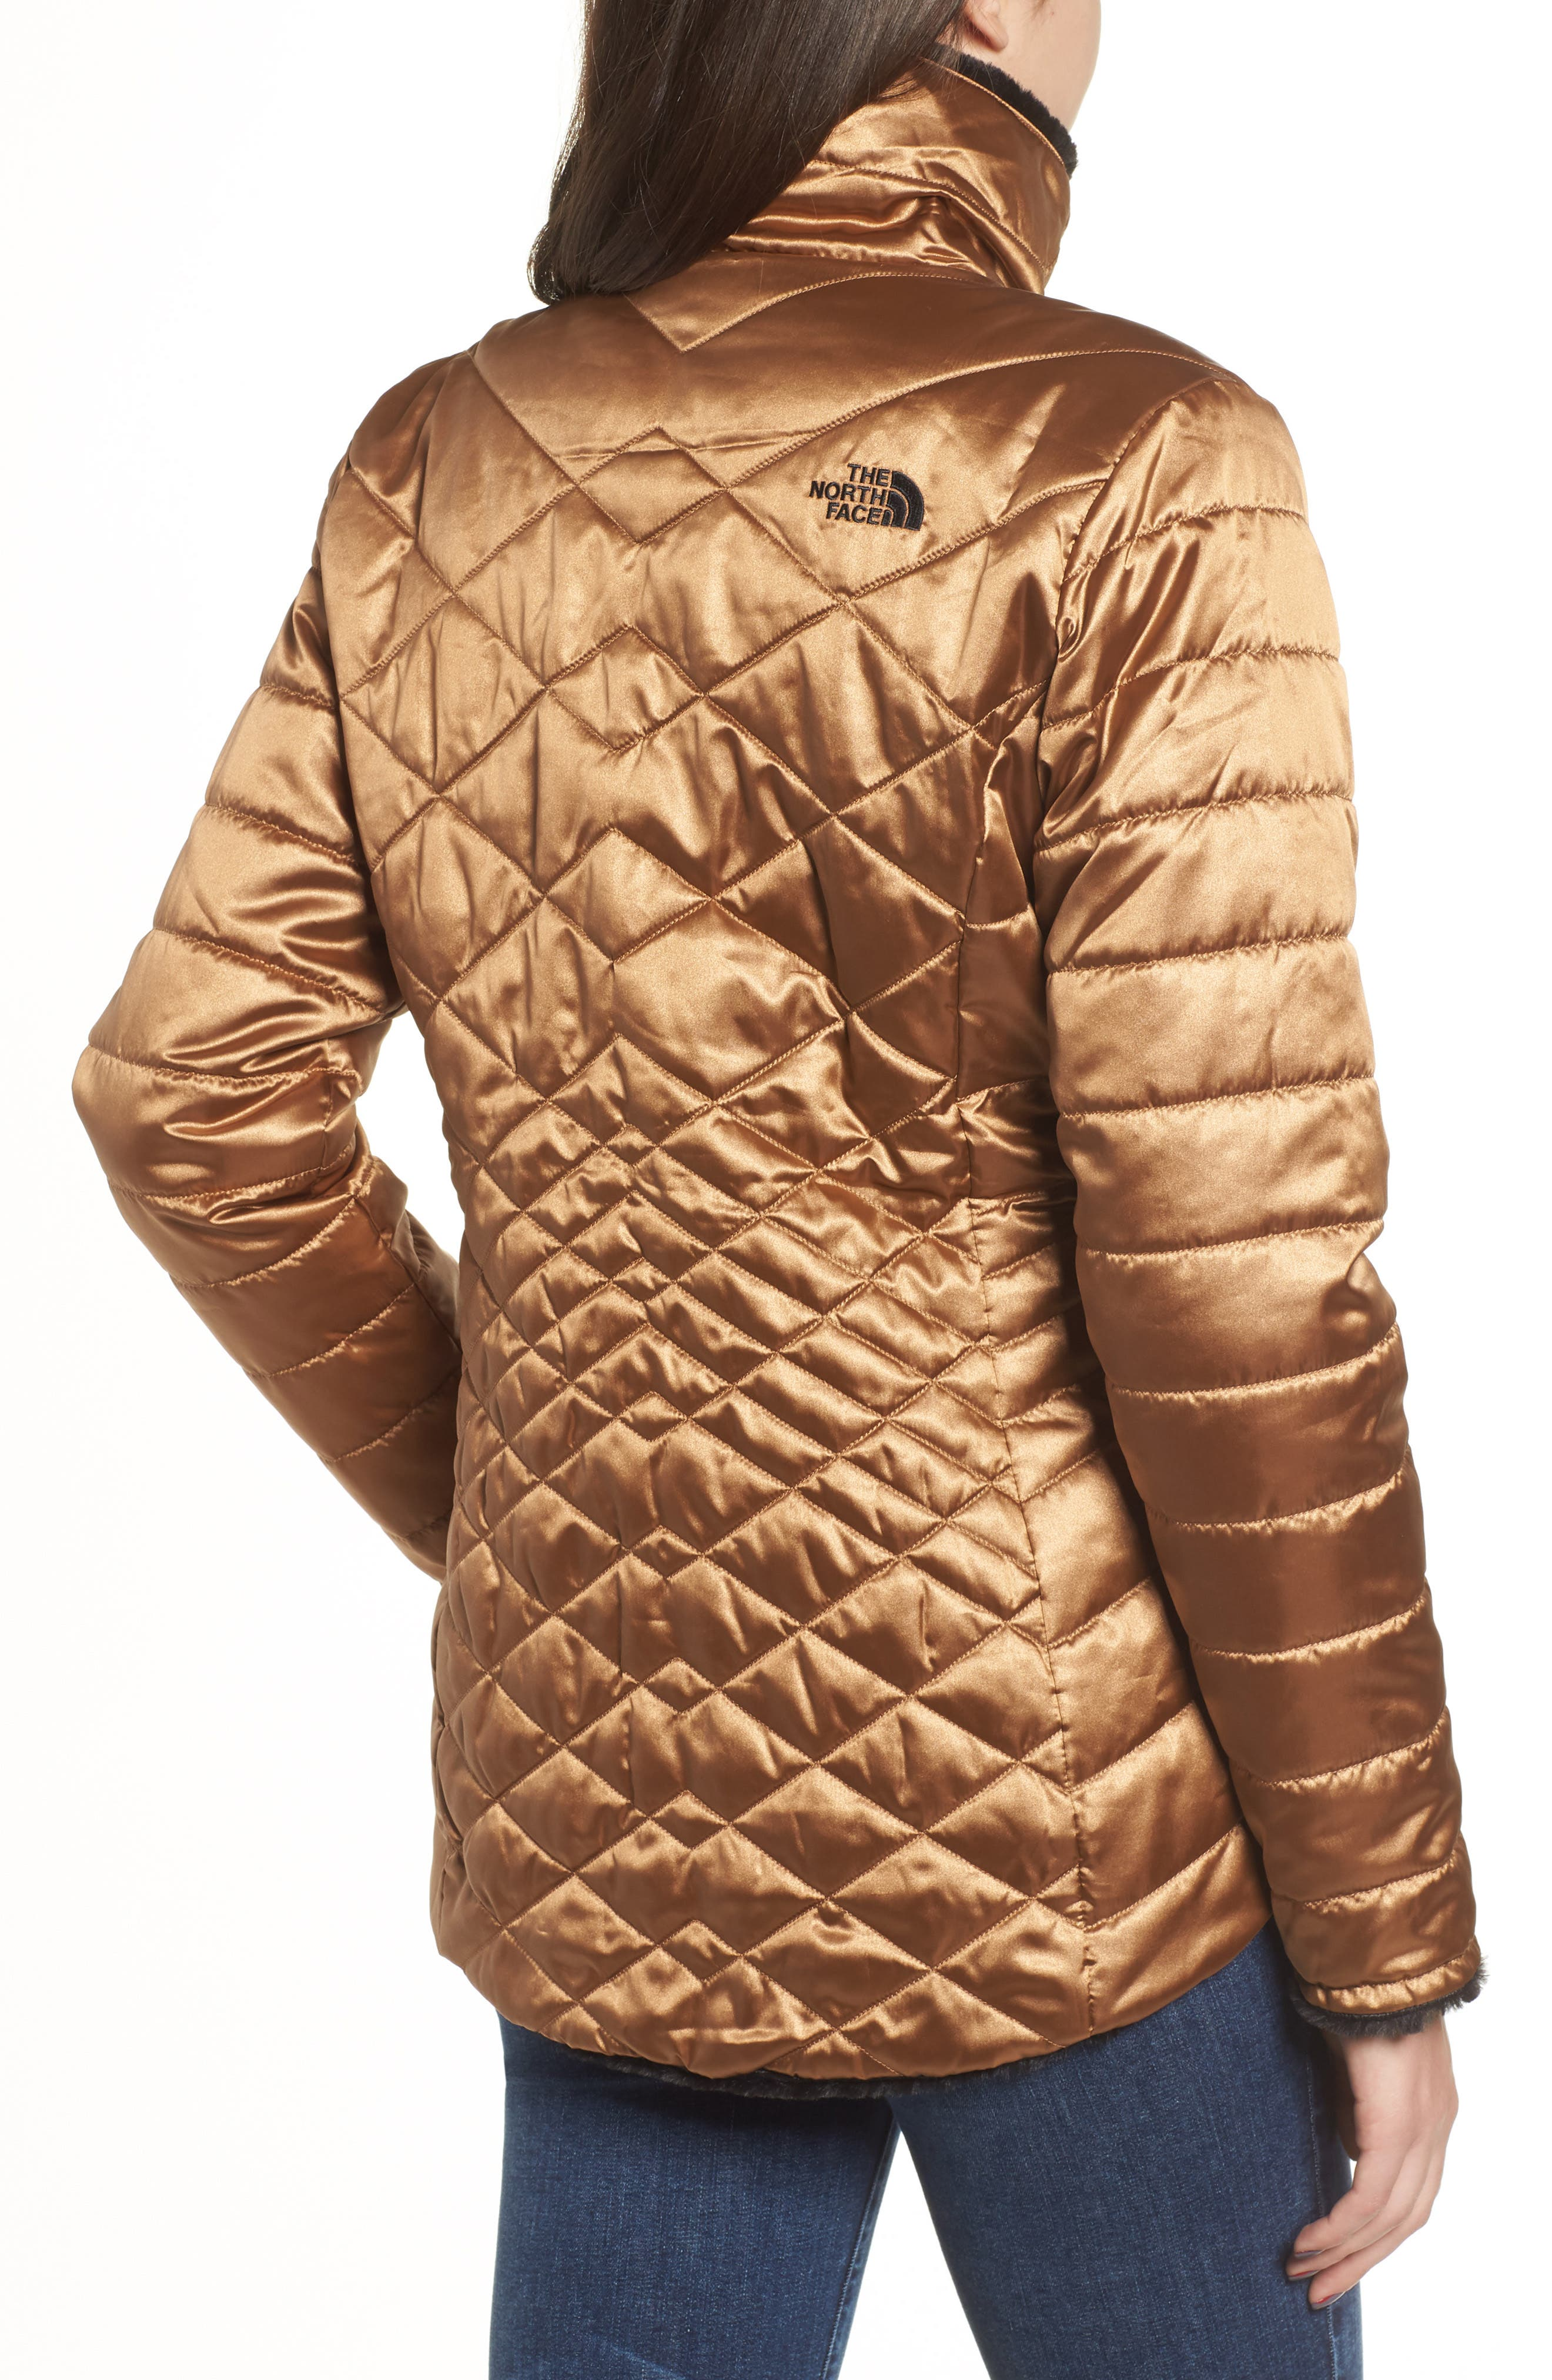 THE NORTH FACE, Mossbud Reversible Heatseeker<sup>™</sup> Wind Resistant Jacket, Alternate thumbnail 4, color, METALLIC COPPER/ TNF BLACK